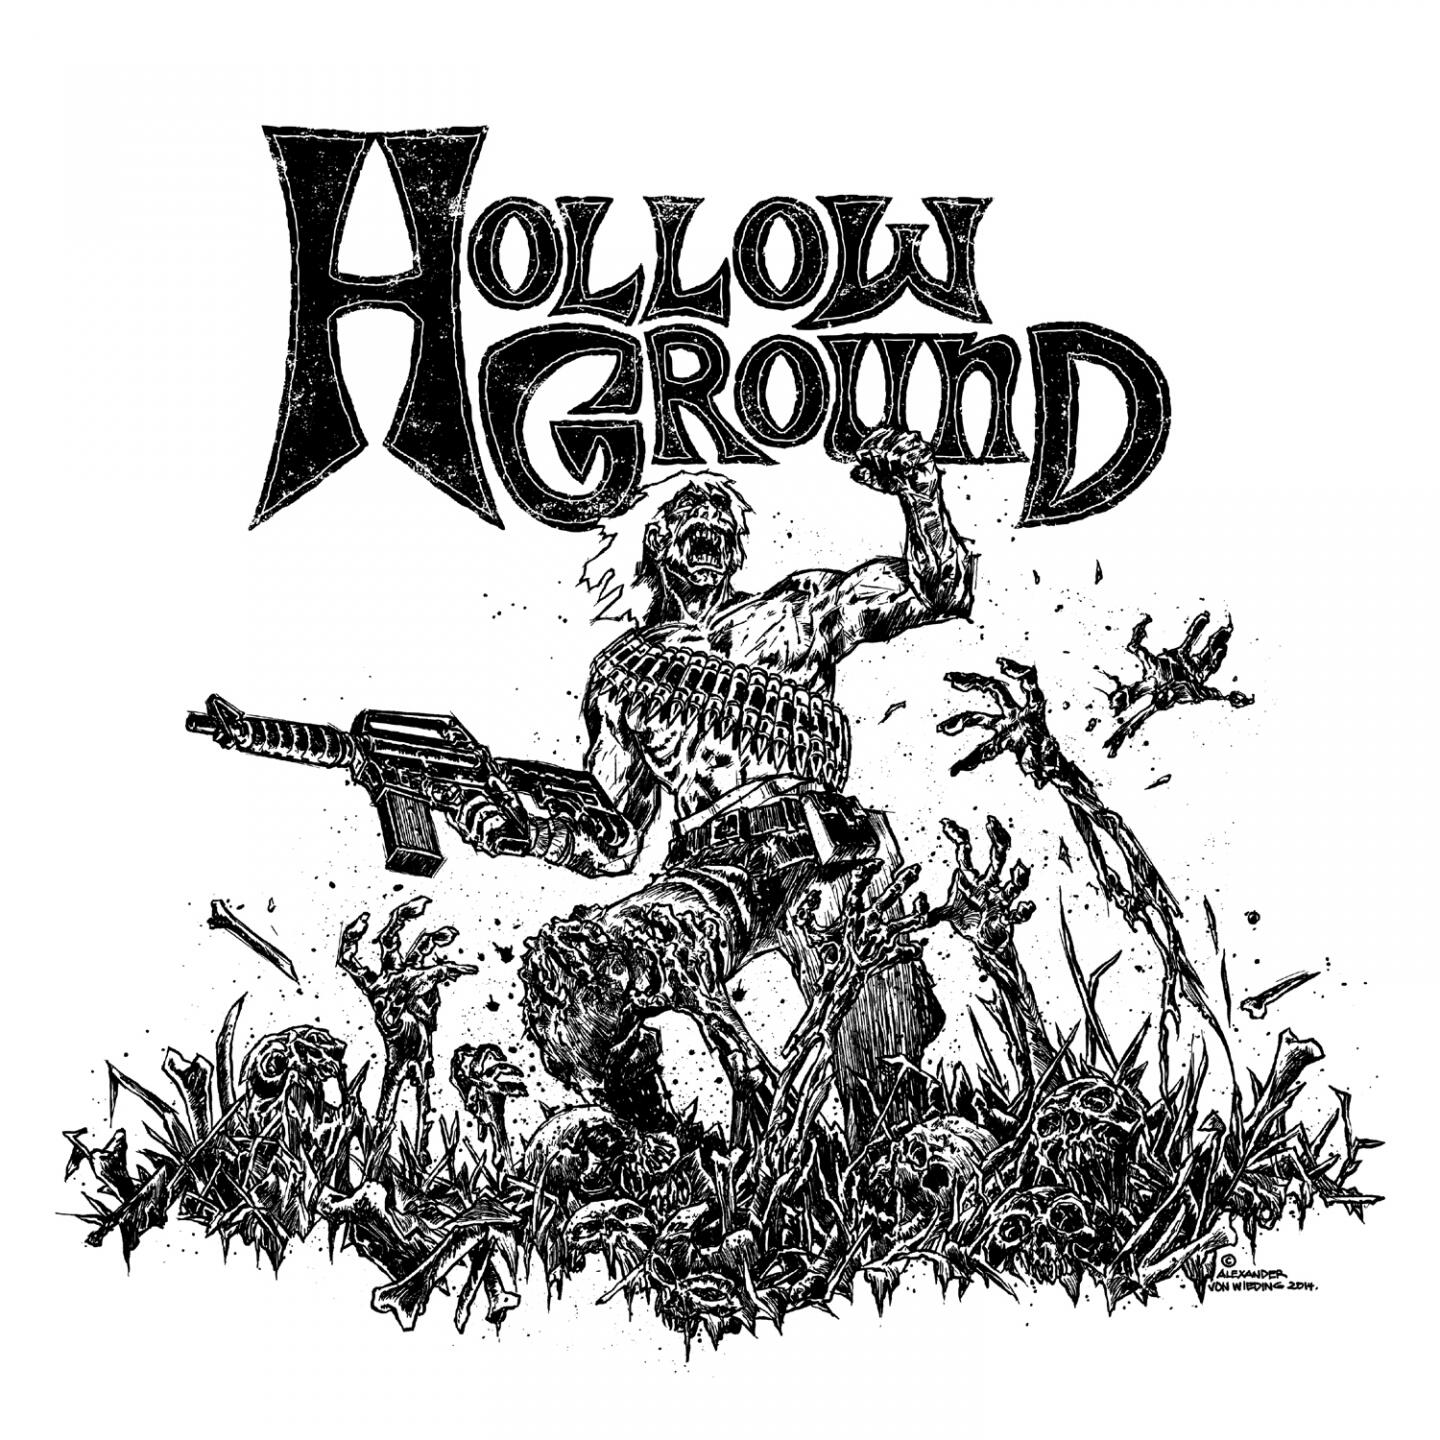 The Hollow Grounds